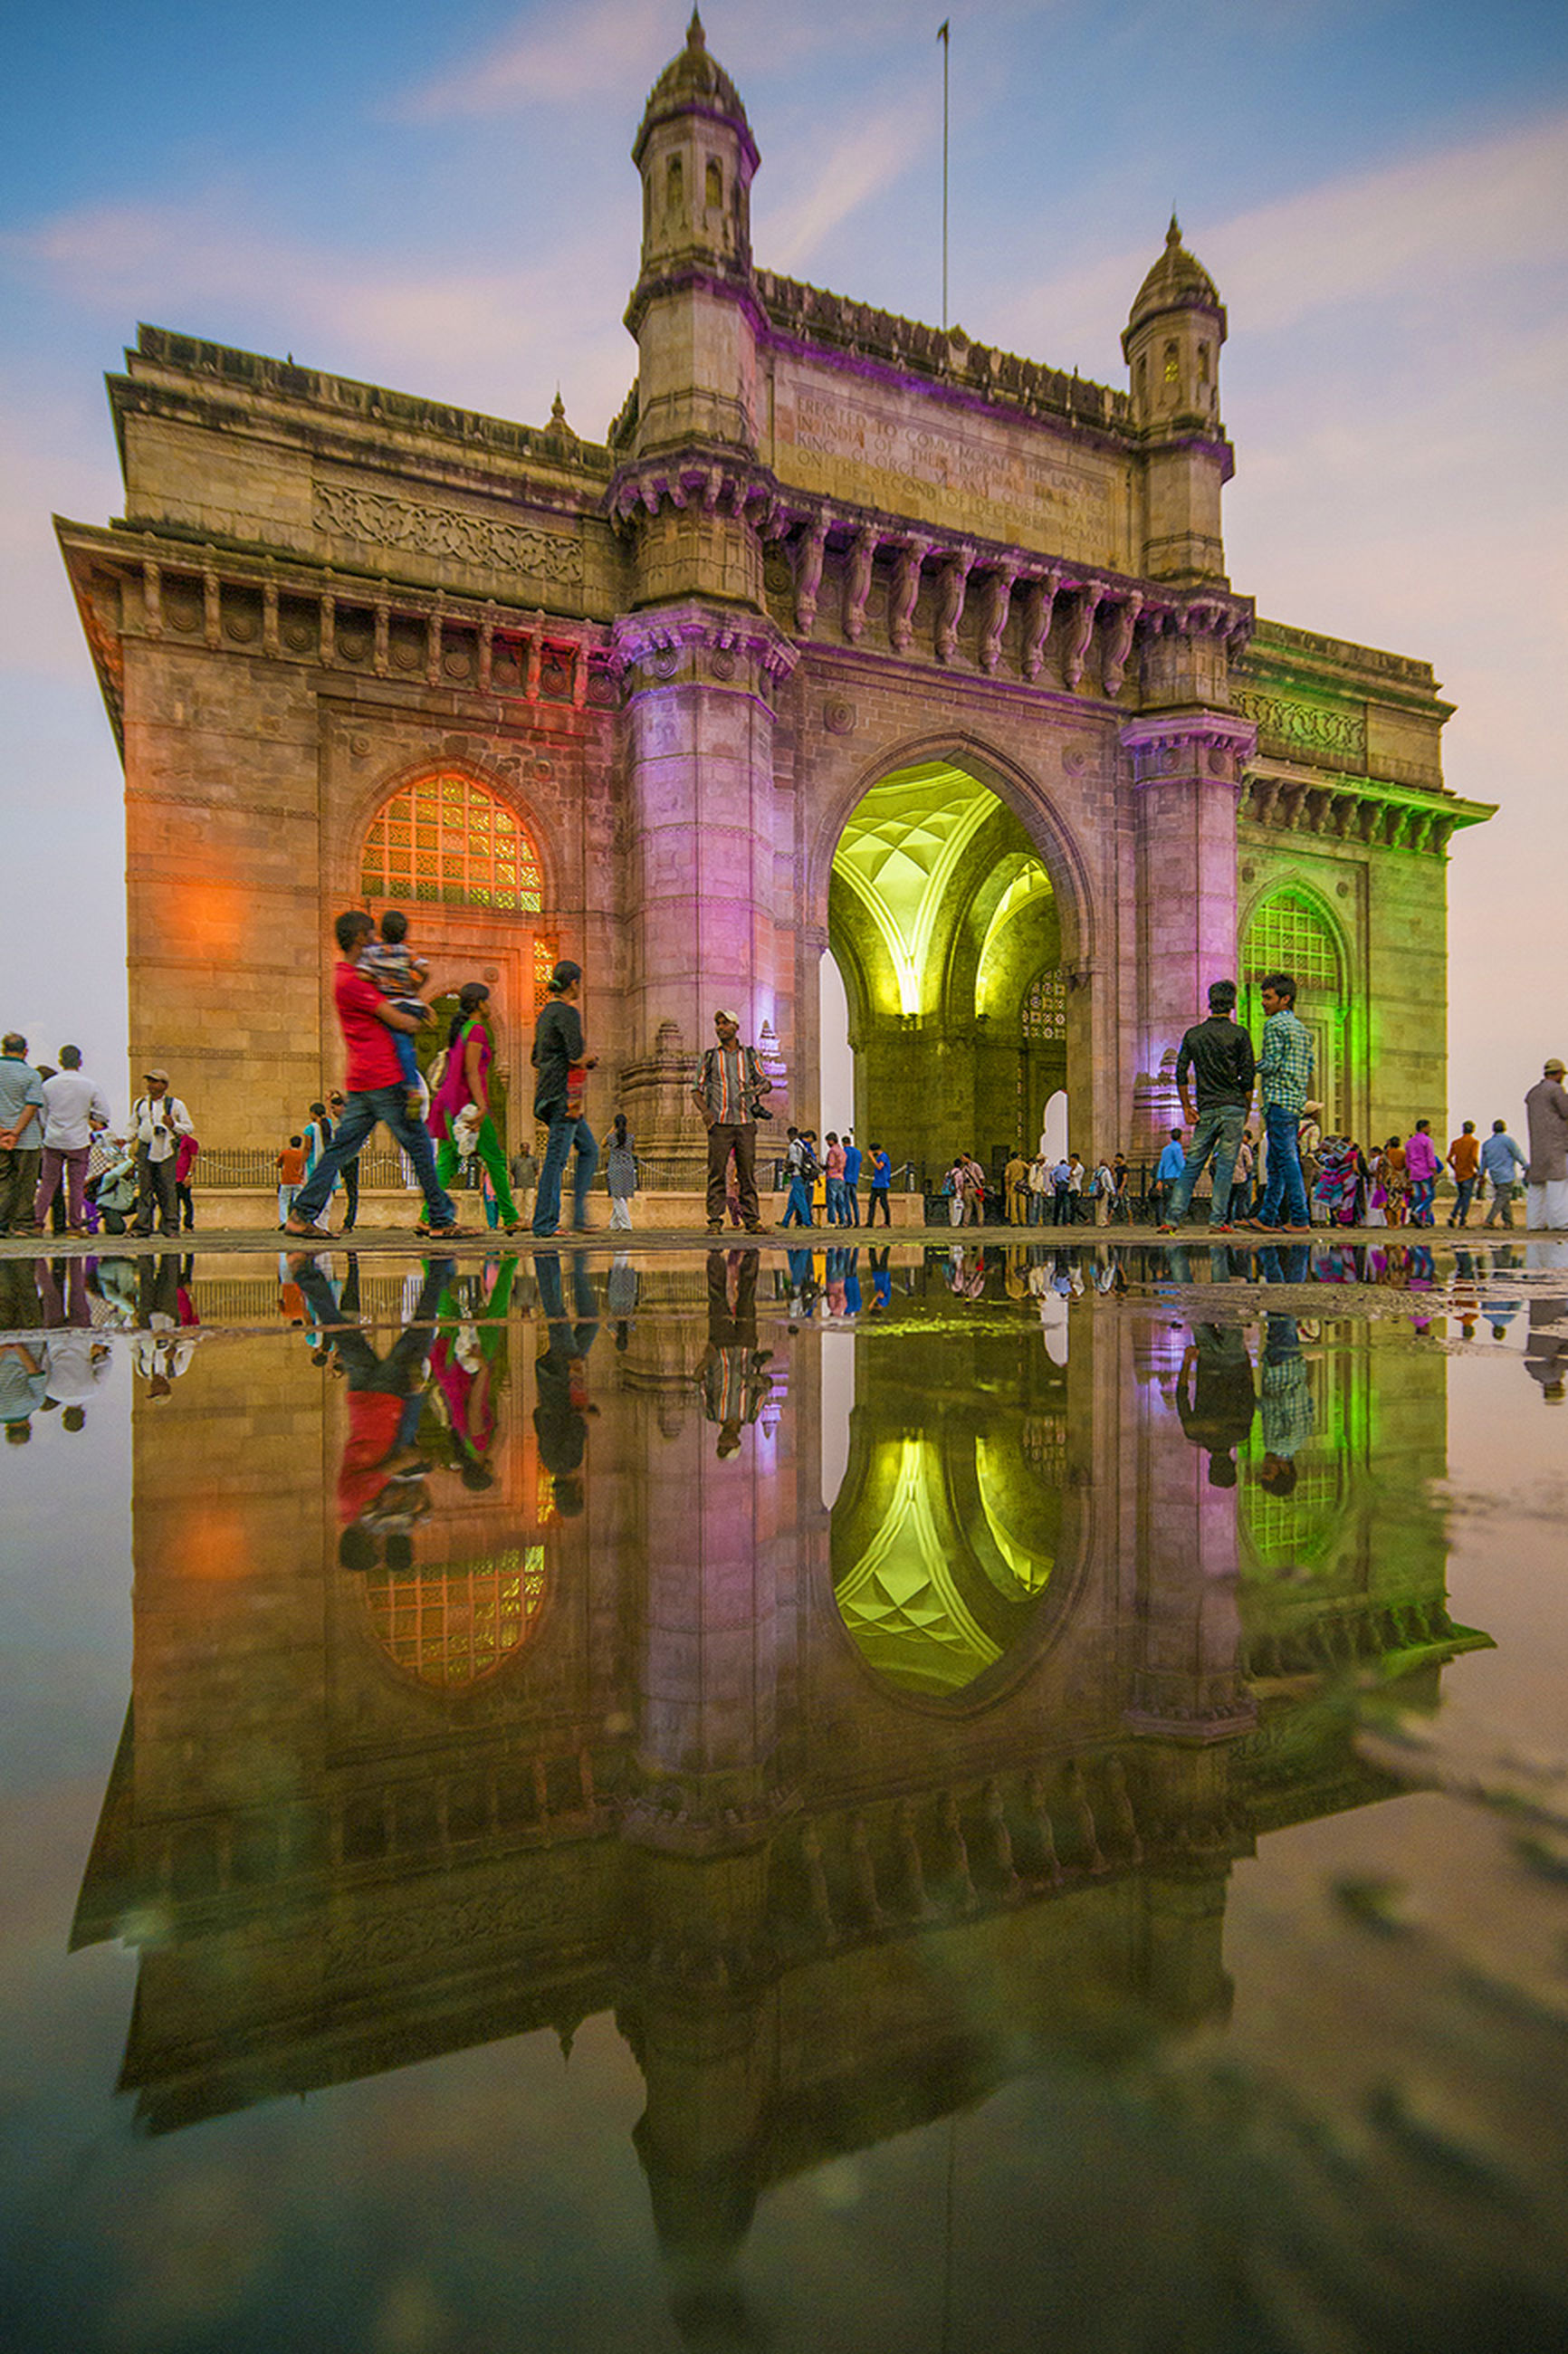 architecture, water, built structure, building exterior, waterfront, reflection, fountain, large group of people, travel destinations, sky, tourism, art and craft, famous place, sculpture, art, incidental people, statue, pond, travel